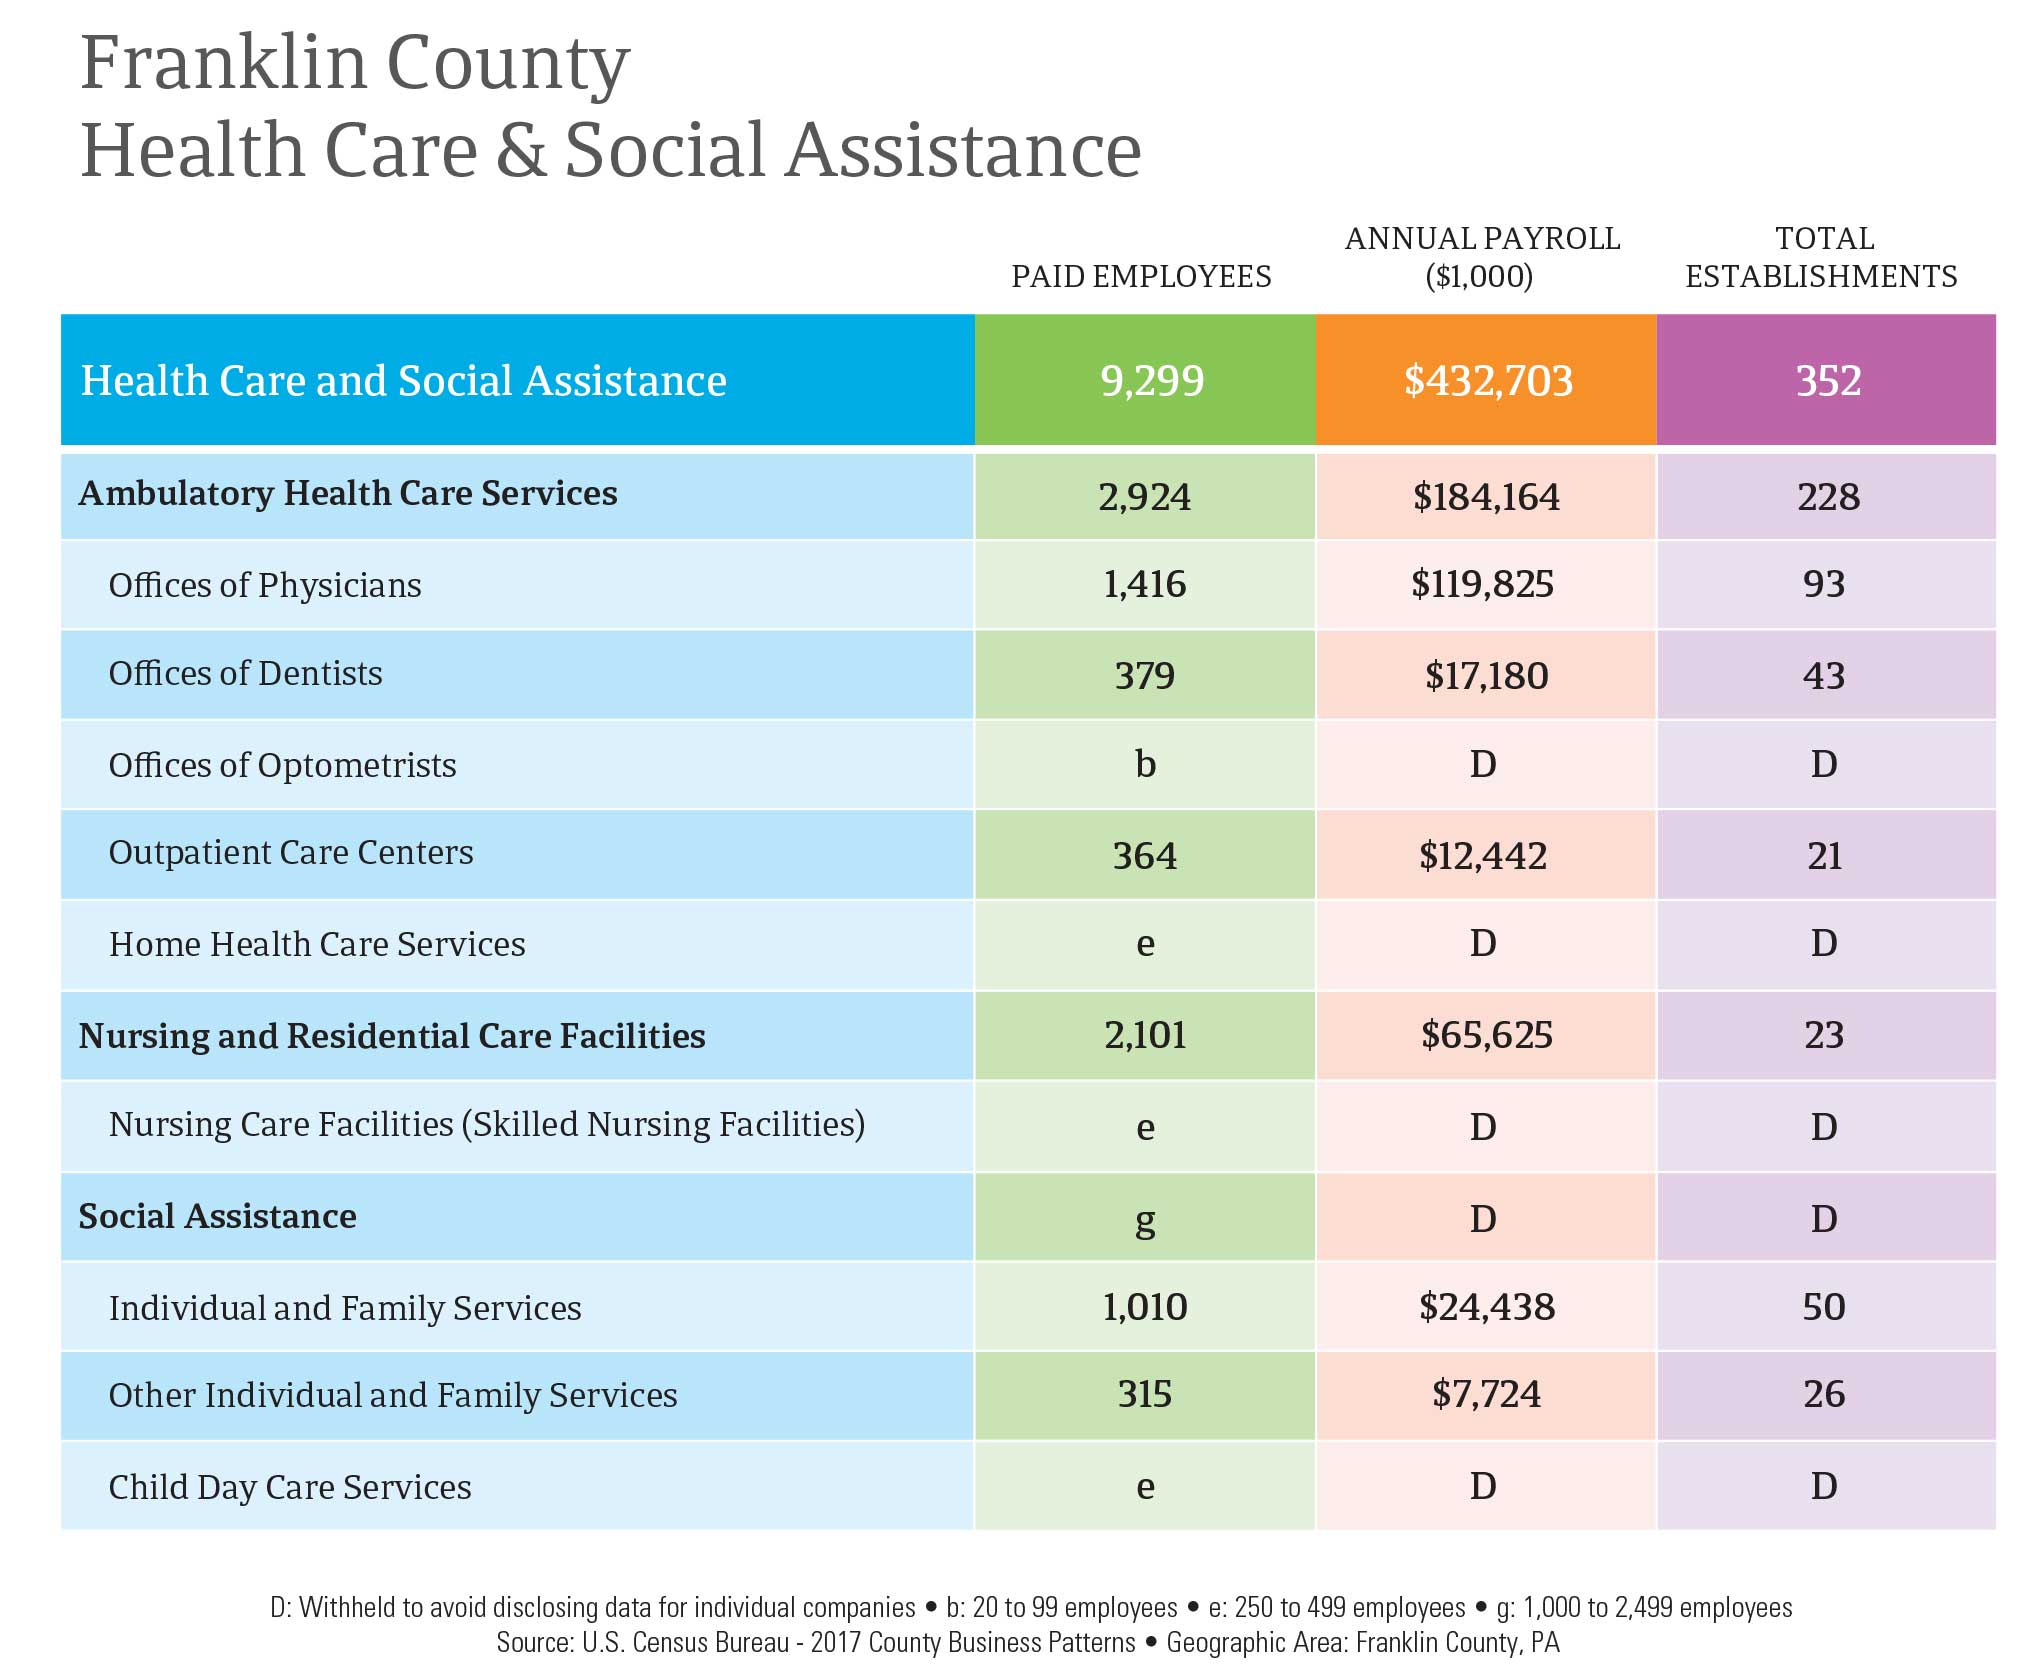 Franklin County Health Care & Social Assistance